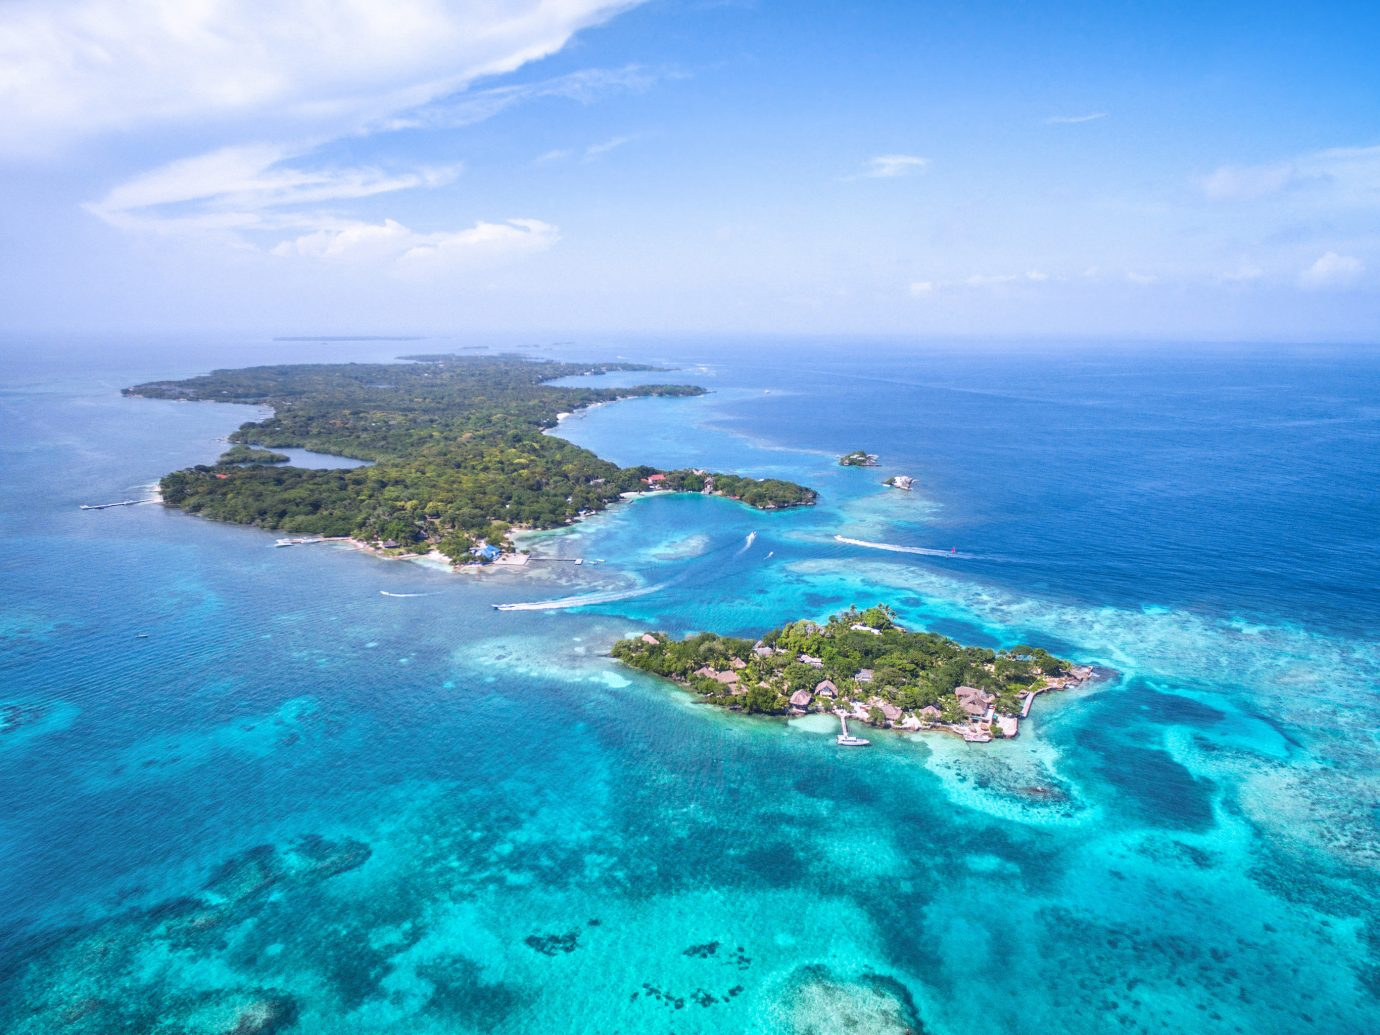 Secret Getaways Trip Ideas coastal and oceanic landforms archipelago Sea islet Island aerial photography promontory reef Ocean water resources atoll cape tropics Lagoon marine biology coral reef Coast peninsula bay bird's eye view water inlet sky caribbean tourism